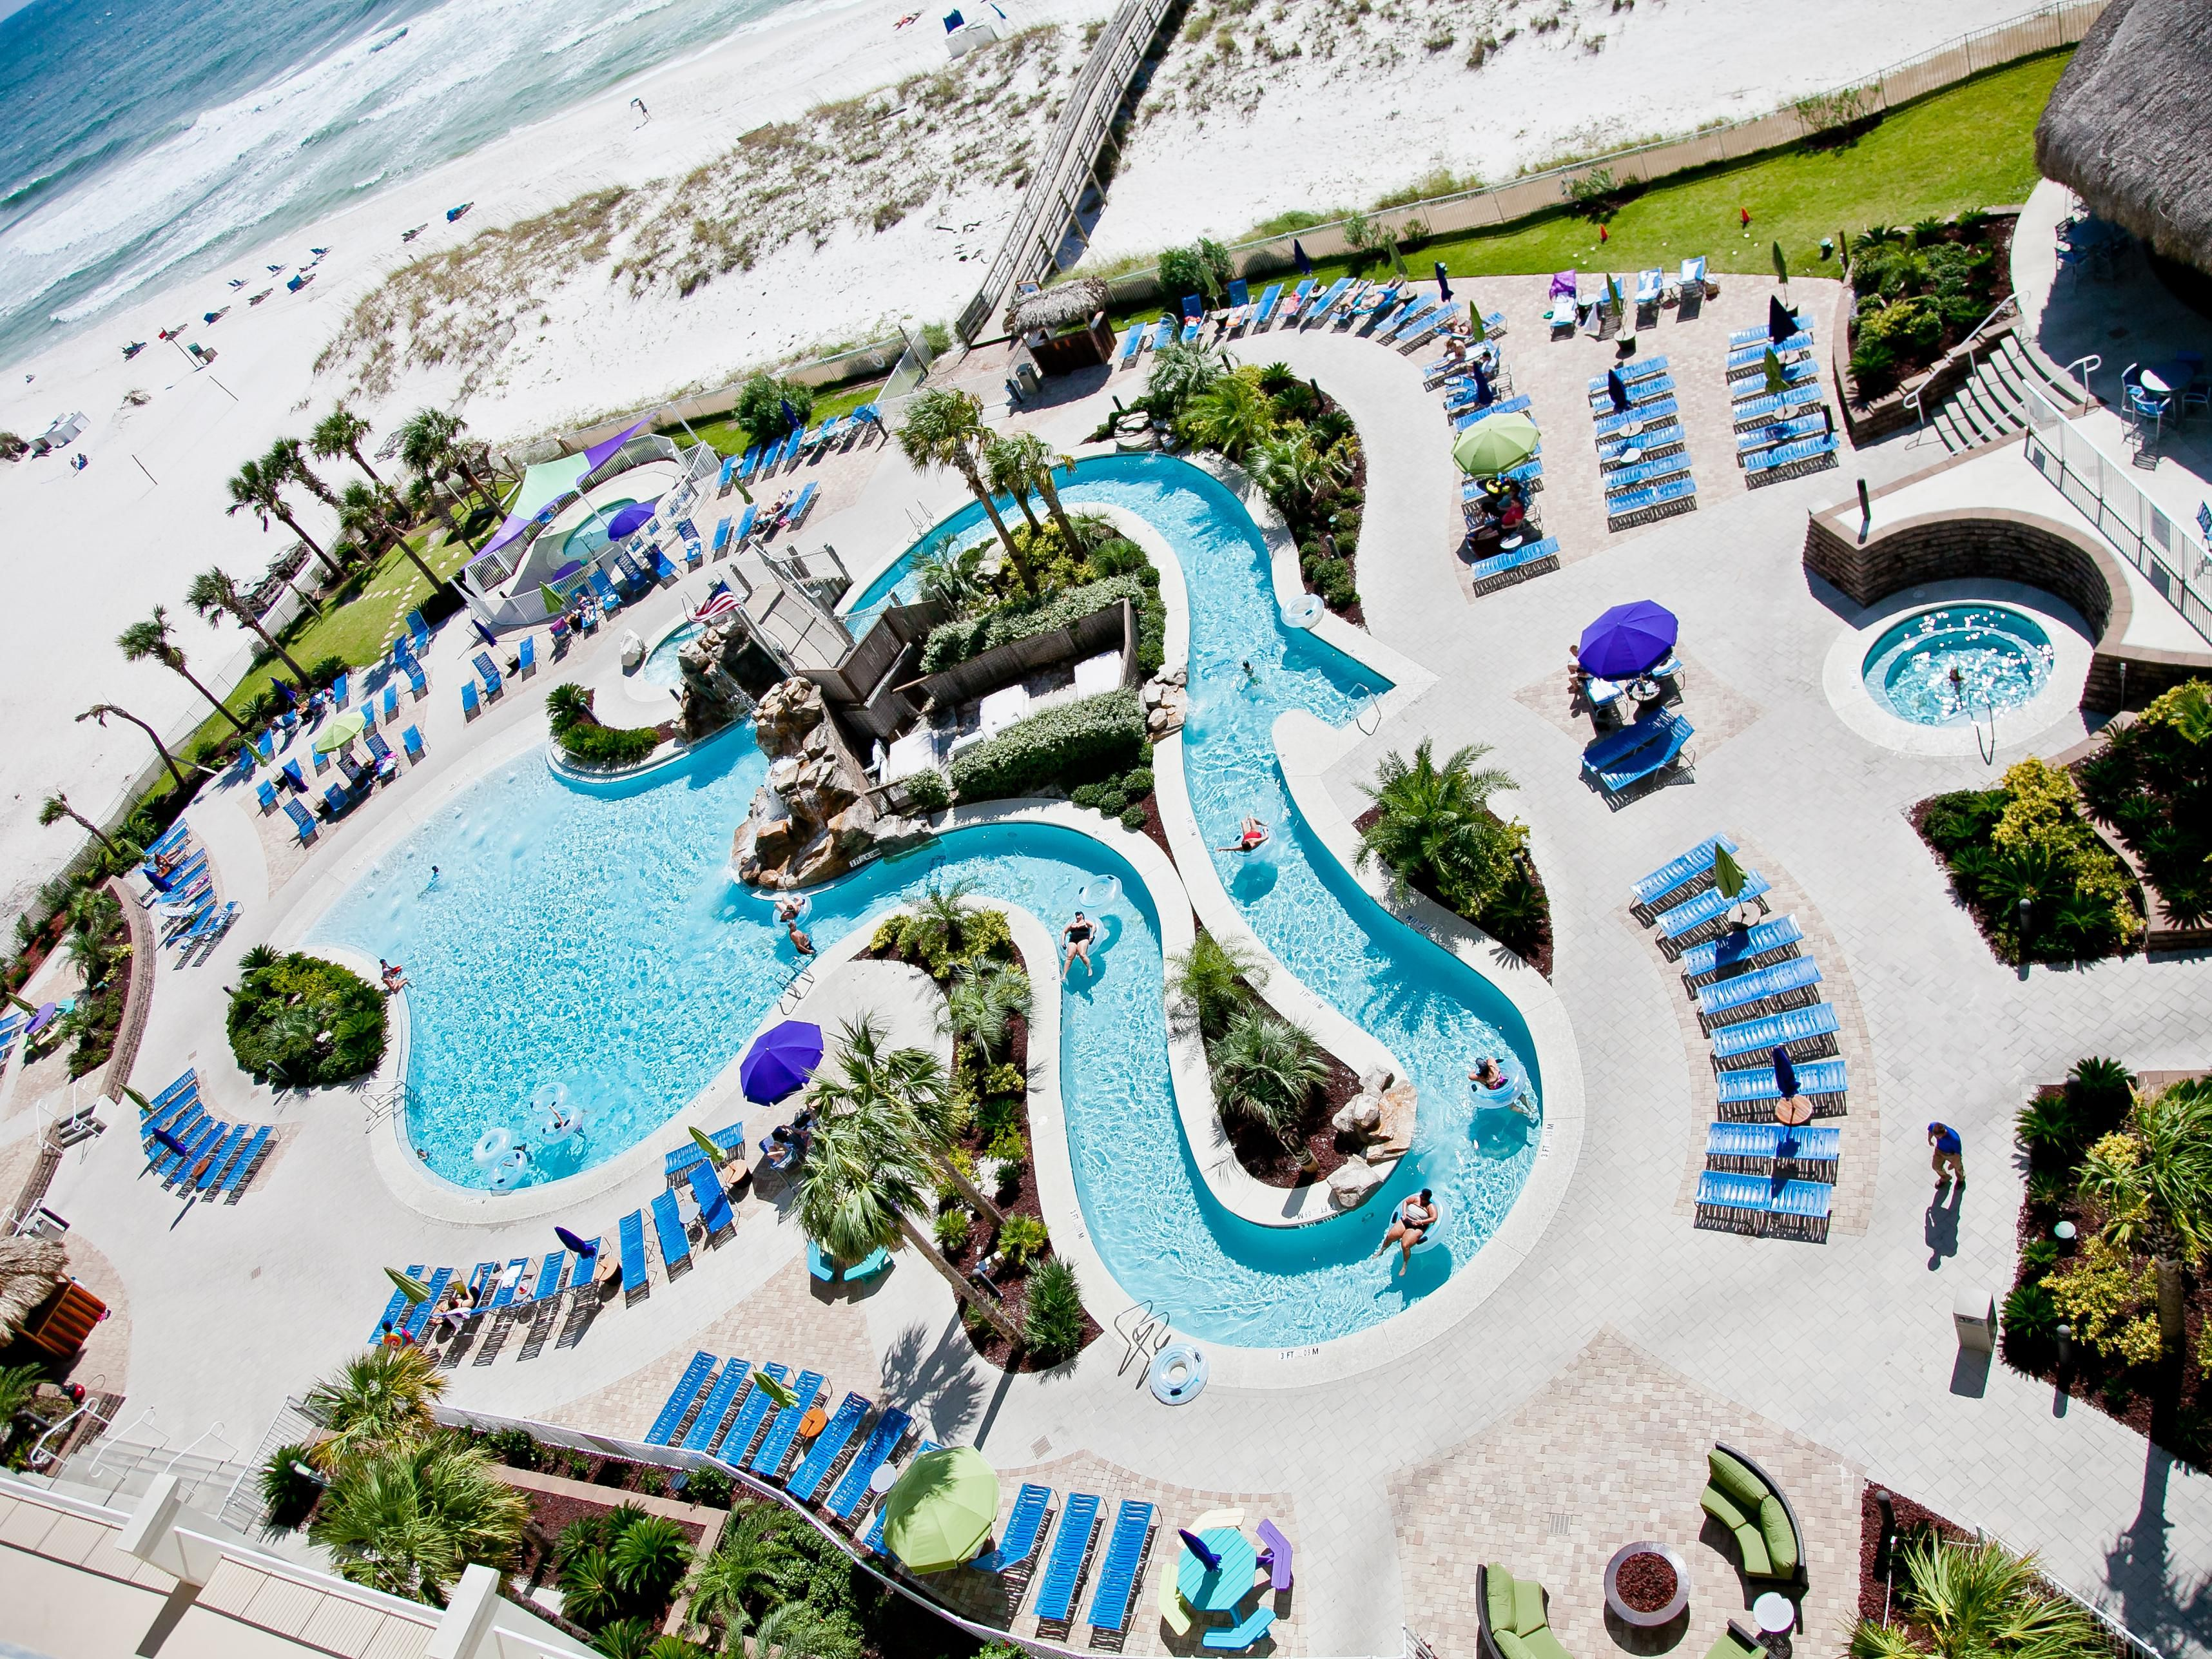 Holiday Inn Resort 250 ft heated Lazy River pool & 2 hot tubs